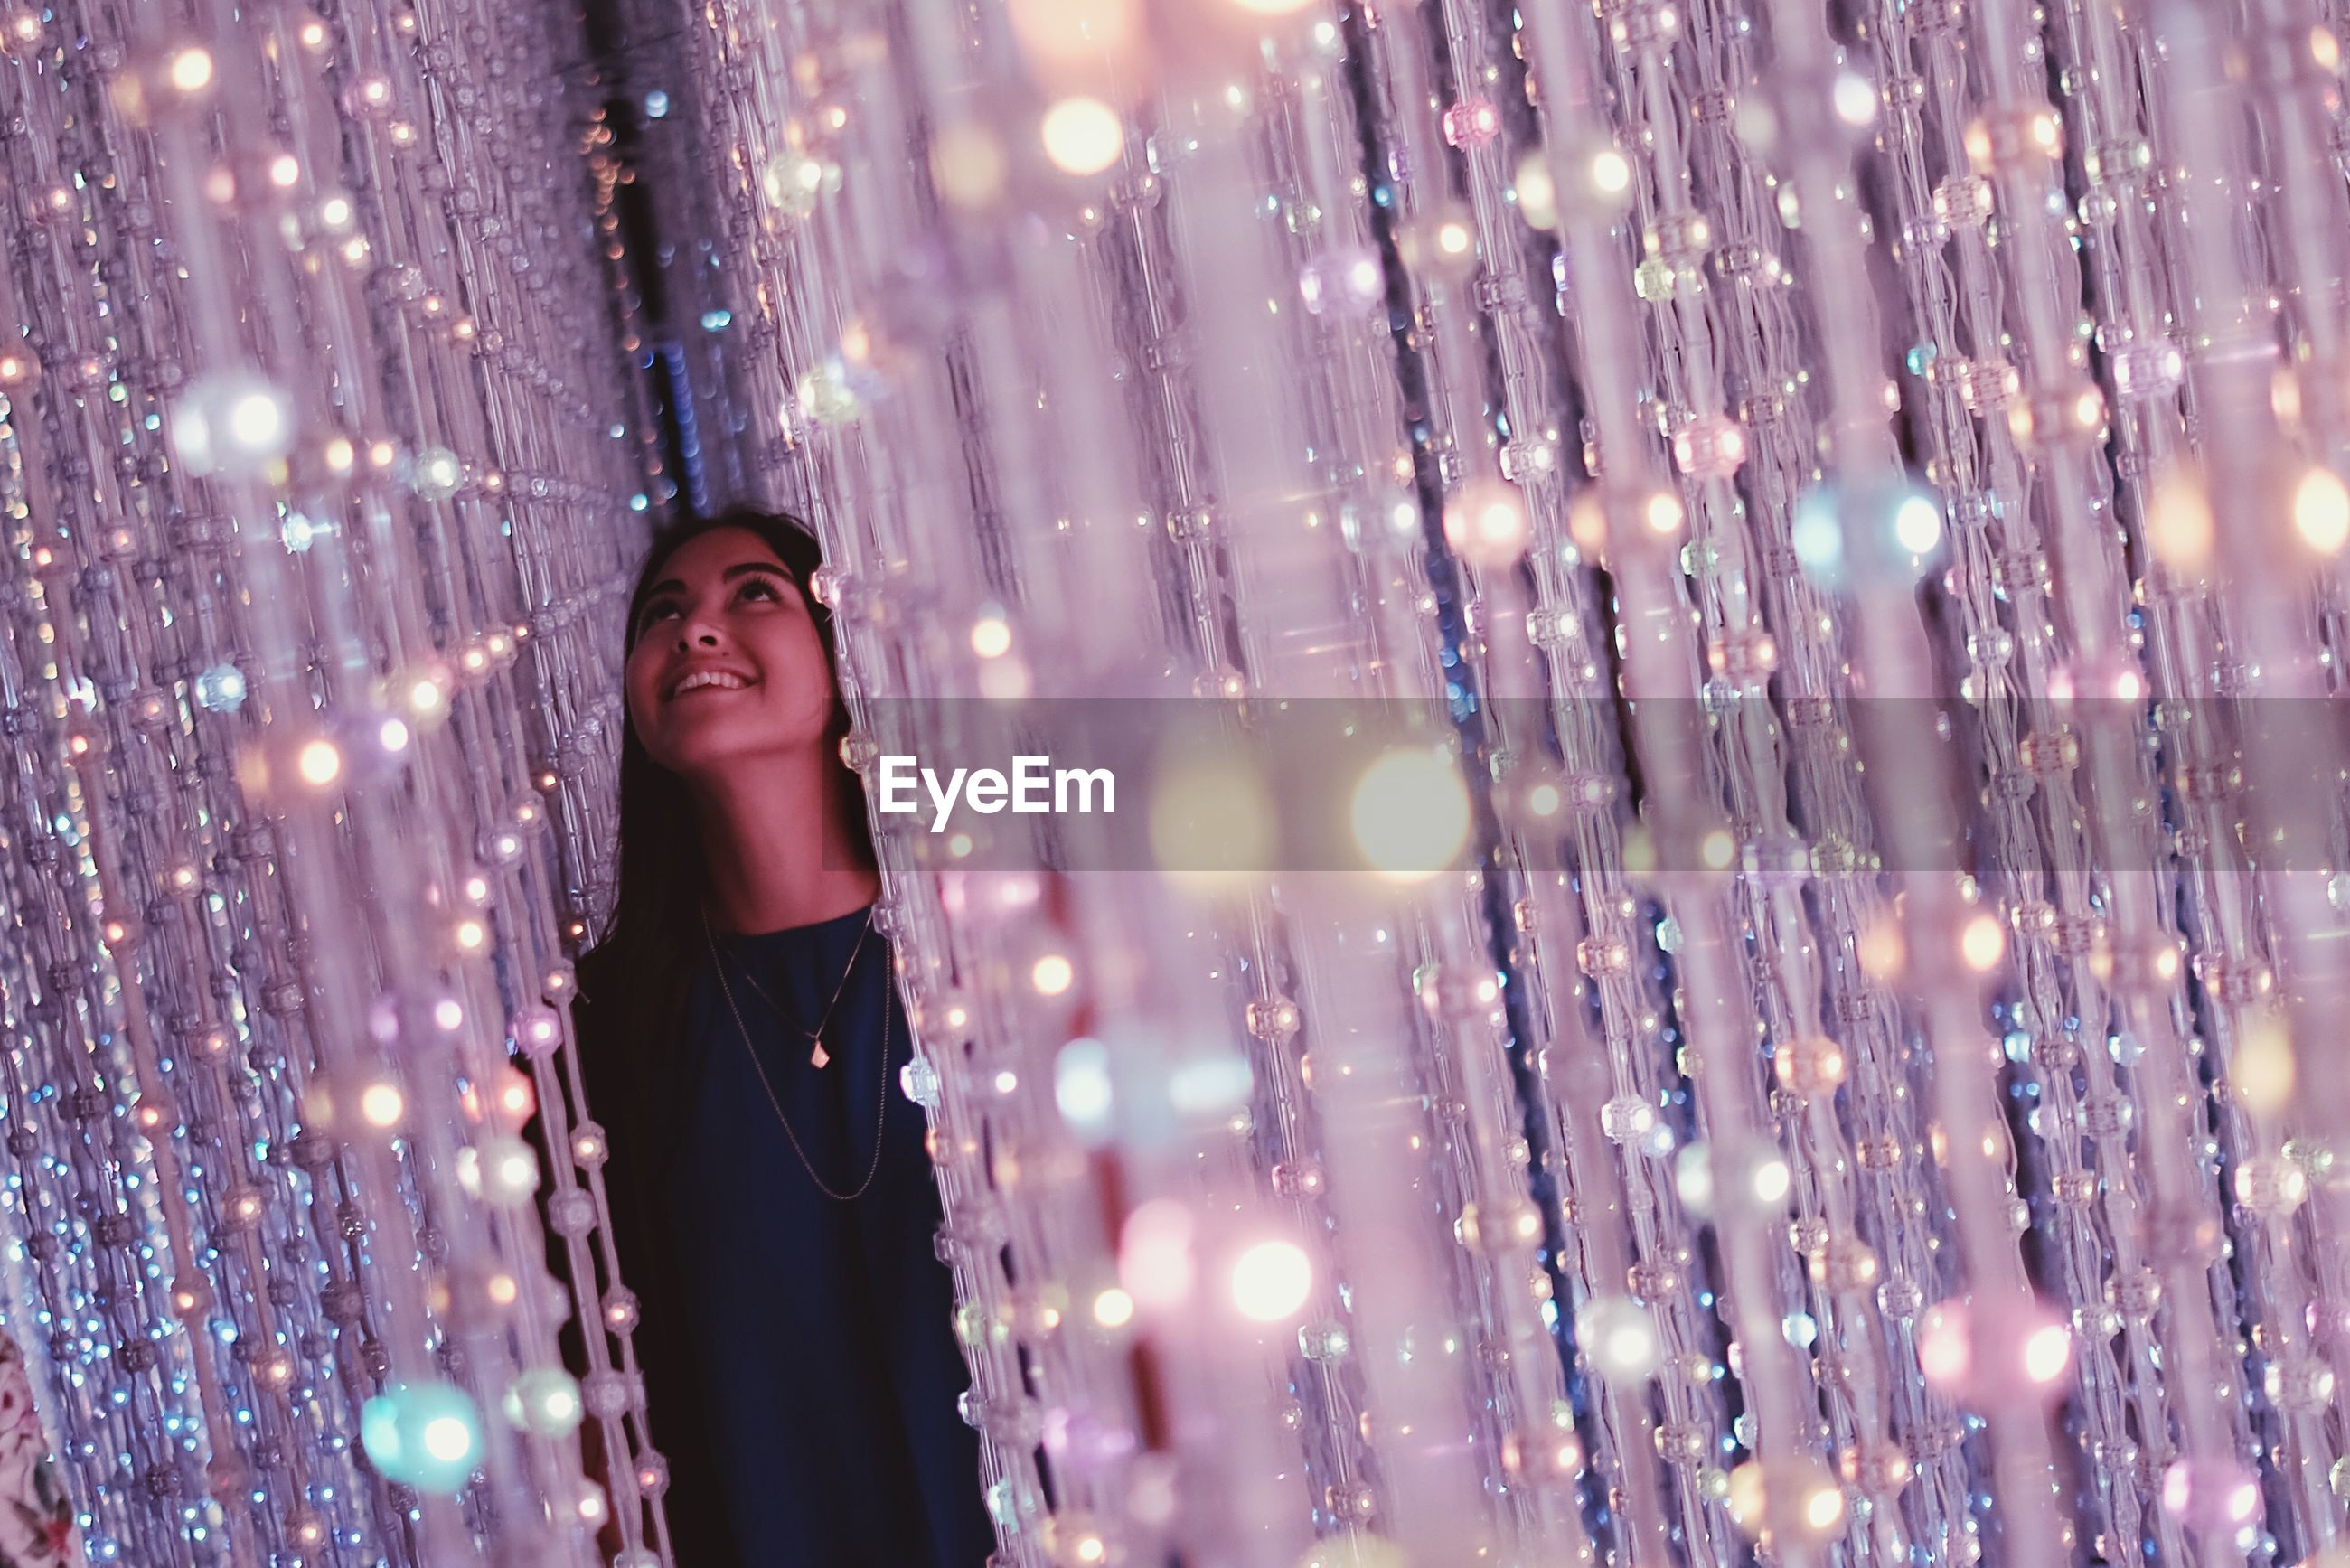 focus on foreground, lifestyles, leisure activity, illuminated, celebration, lens flare, selective focus, night, standing, close-up, defocused, tree, enjoyment, outdoors, three quarter length, front view, motion, holding